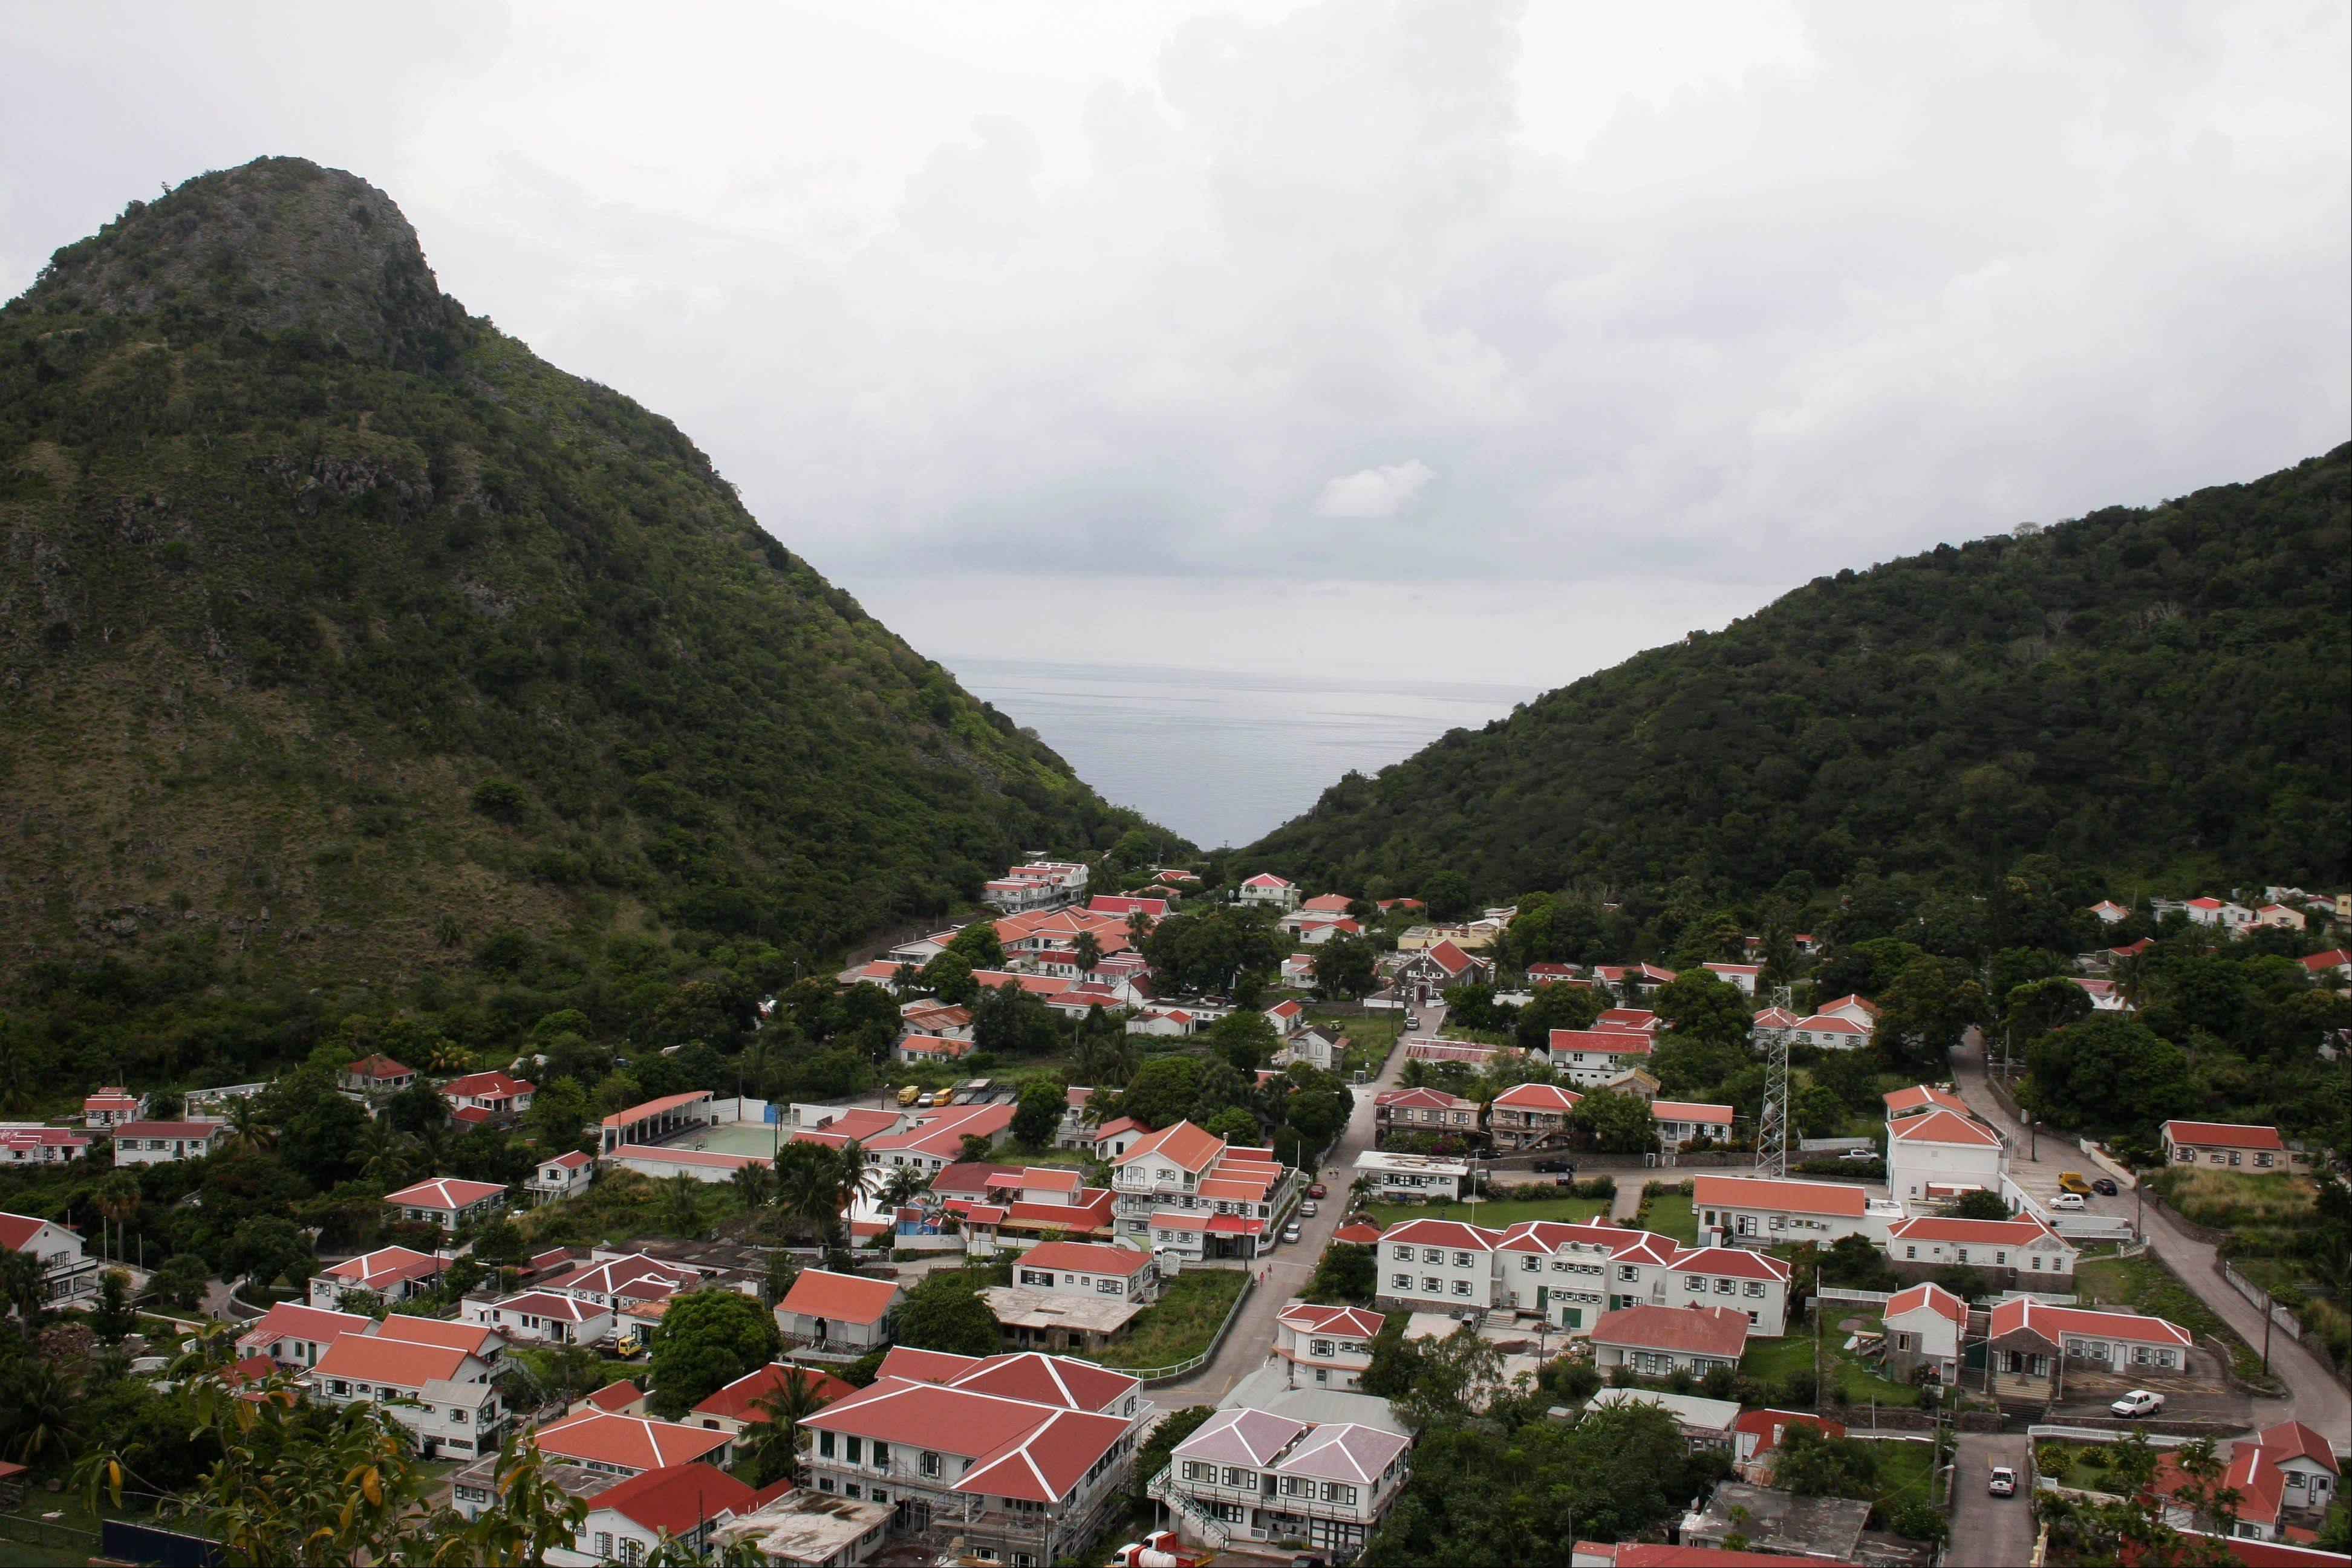 A view of The Bottom, which is the capital of the mountainous island of Saba.